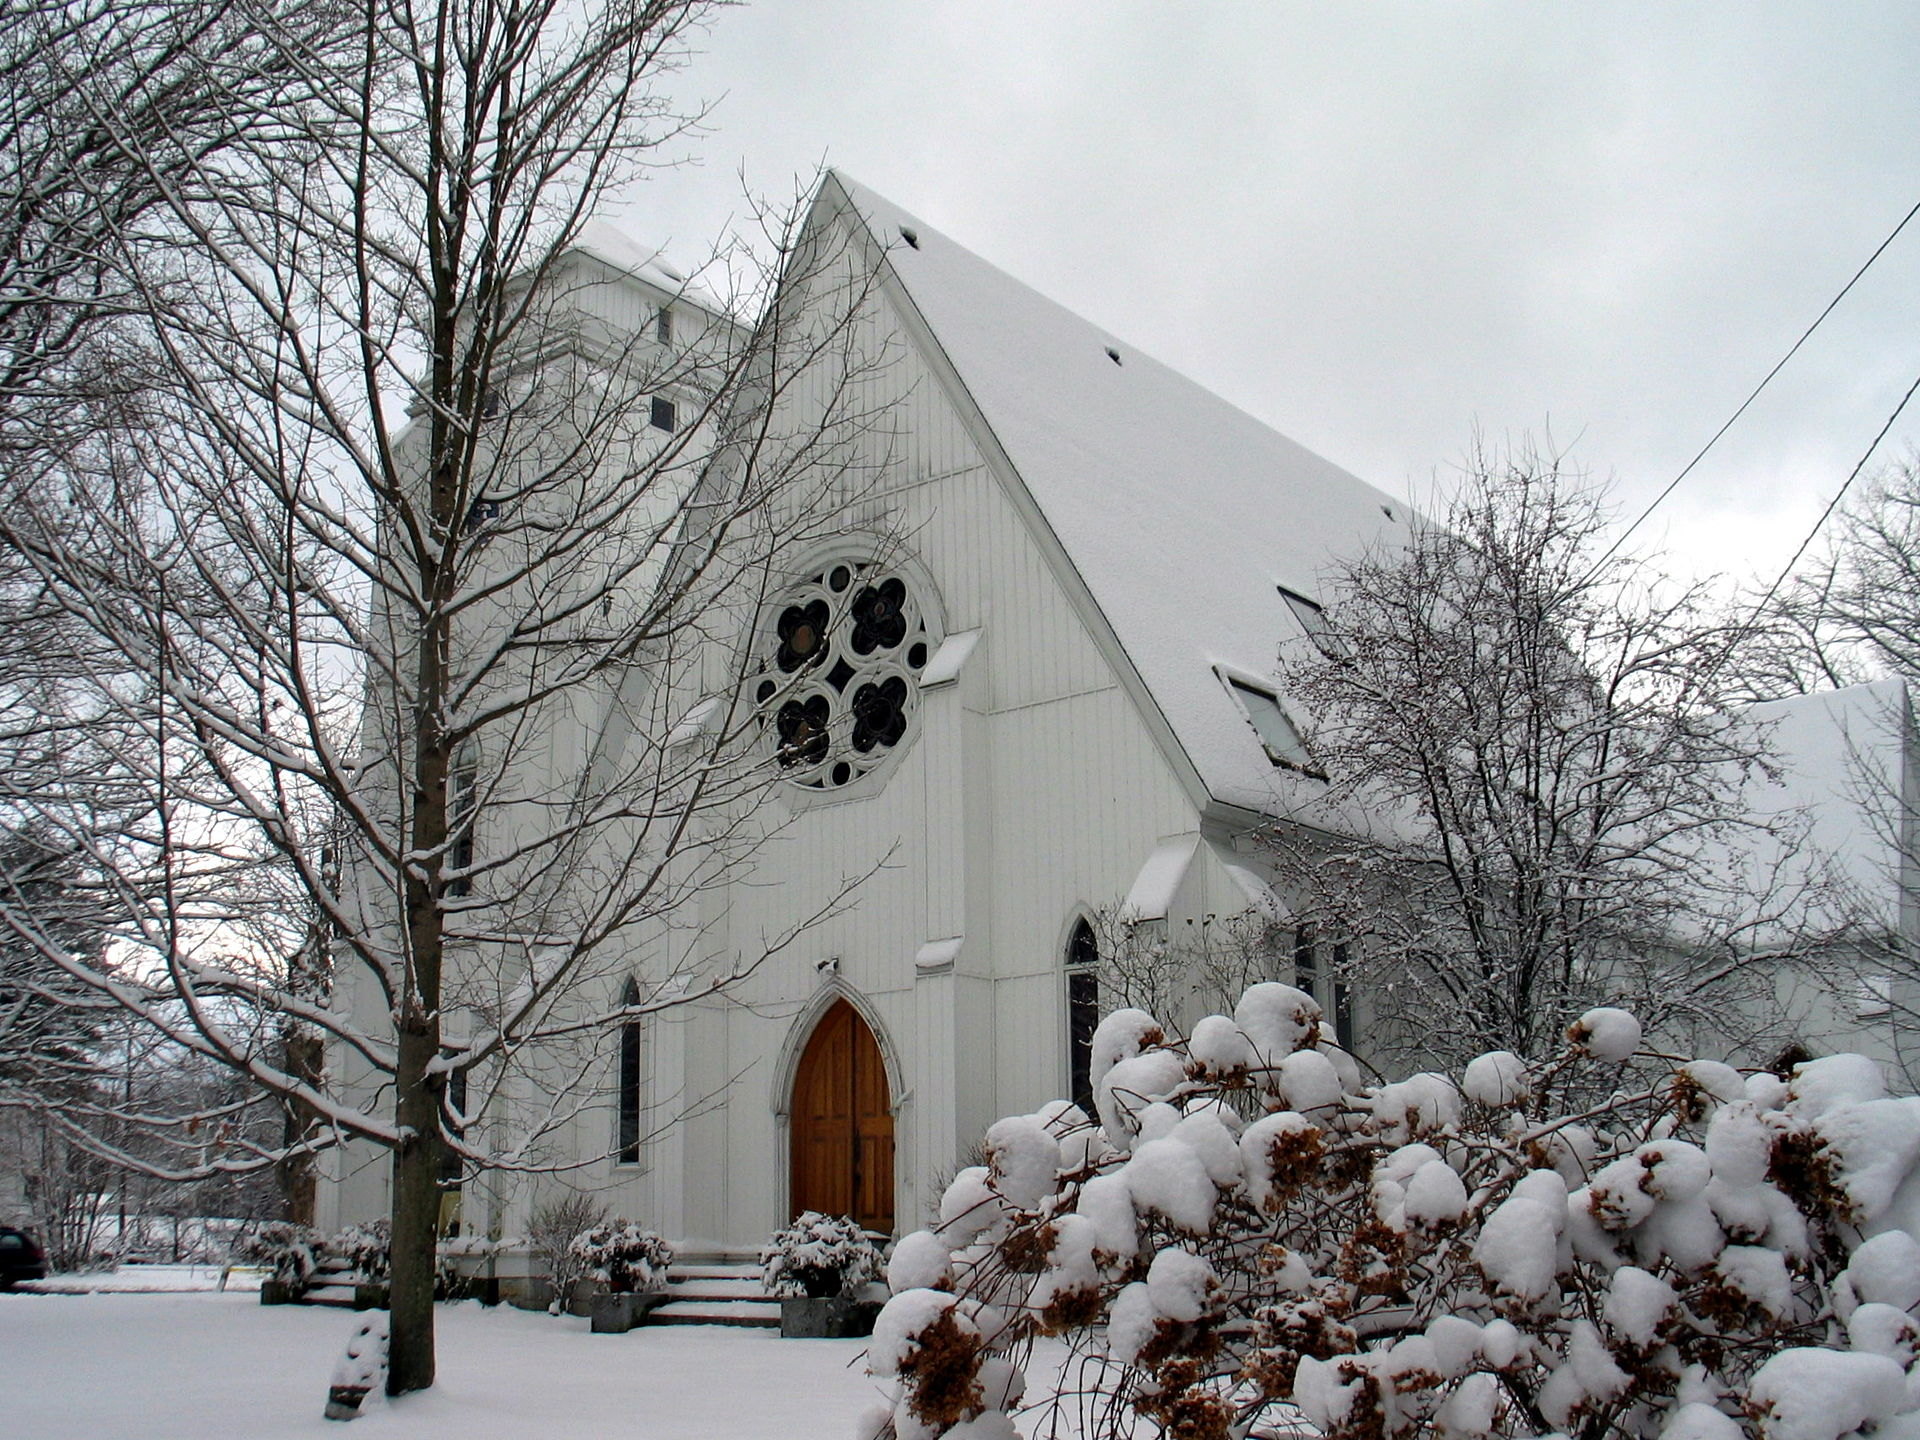 The former church where the story begins, located at 4 Van Deusenville Road in Great Barrington, Massachusetts; the building later became the Guthrie Center.